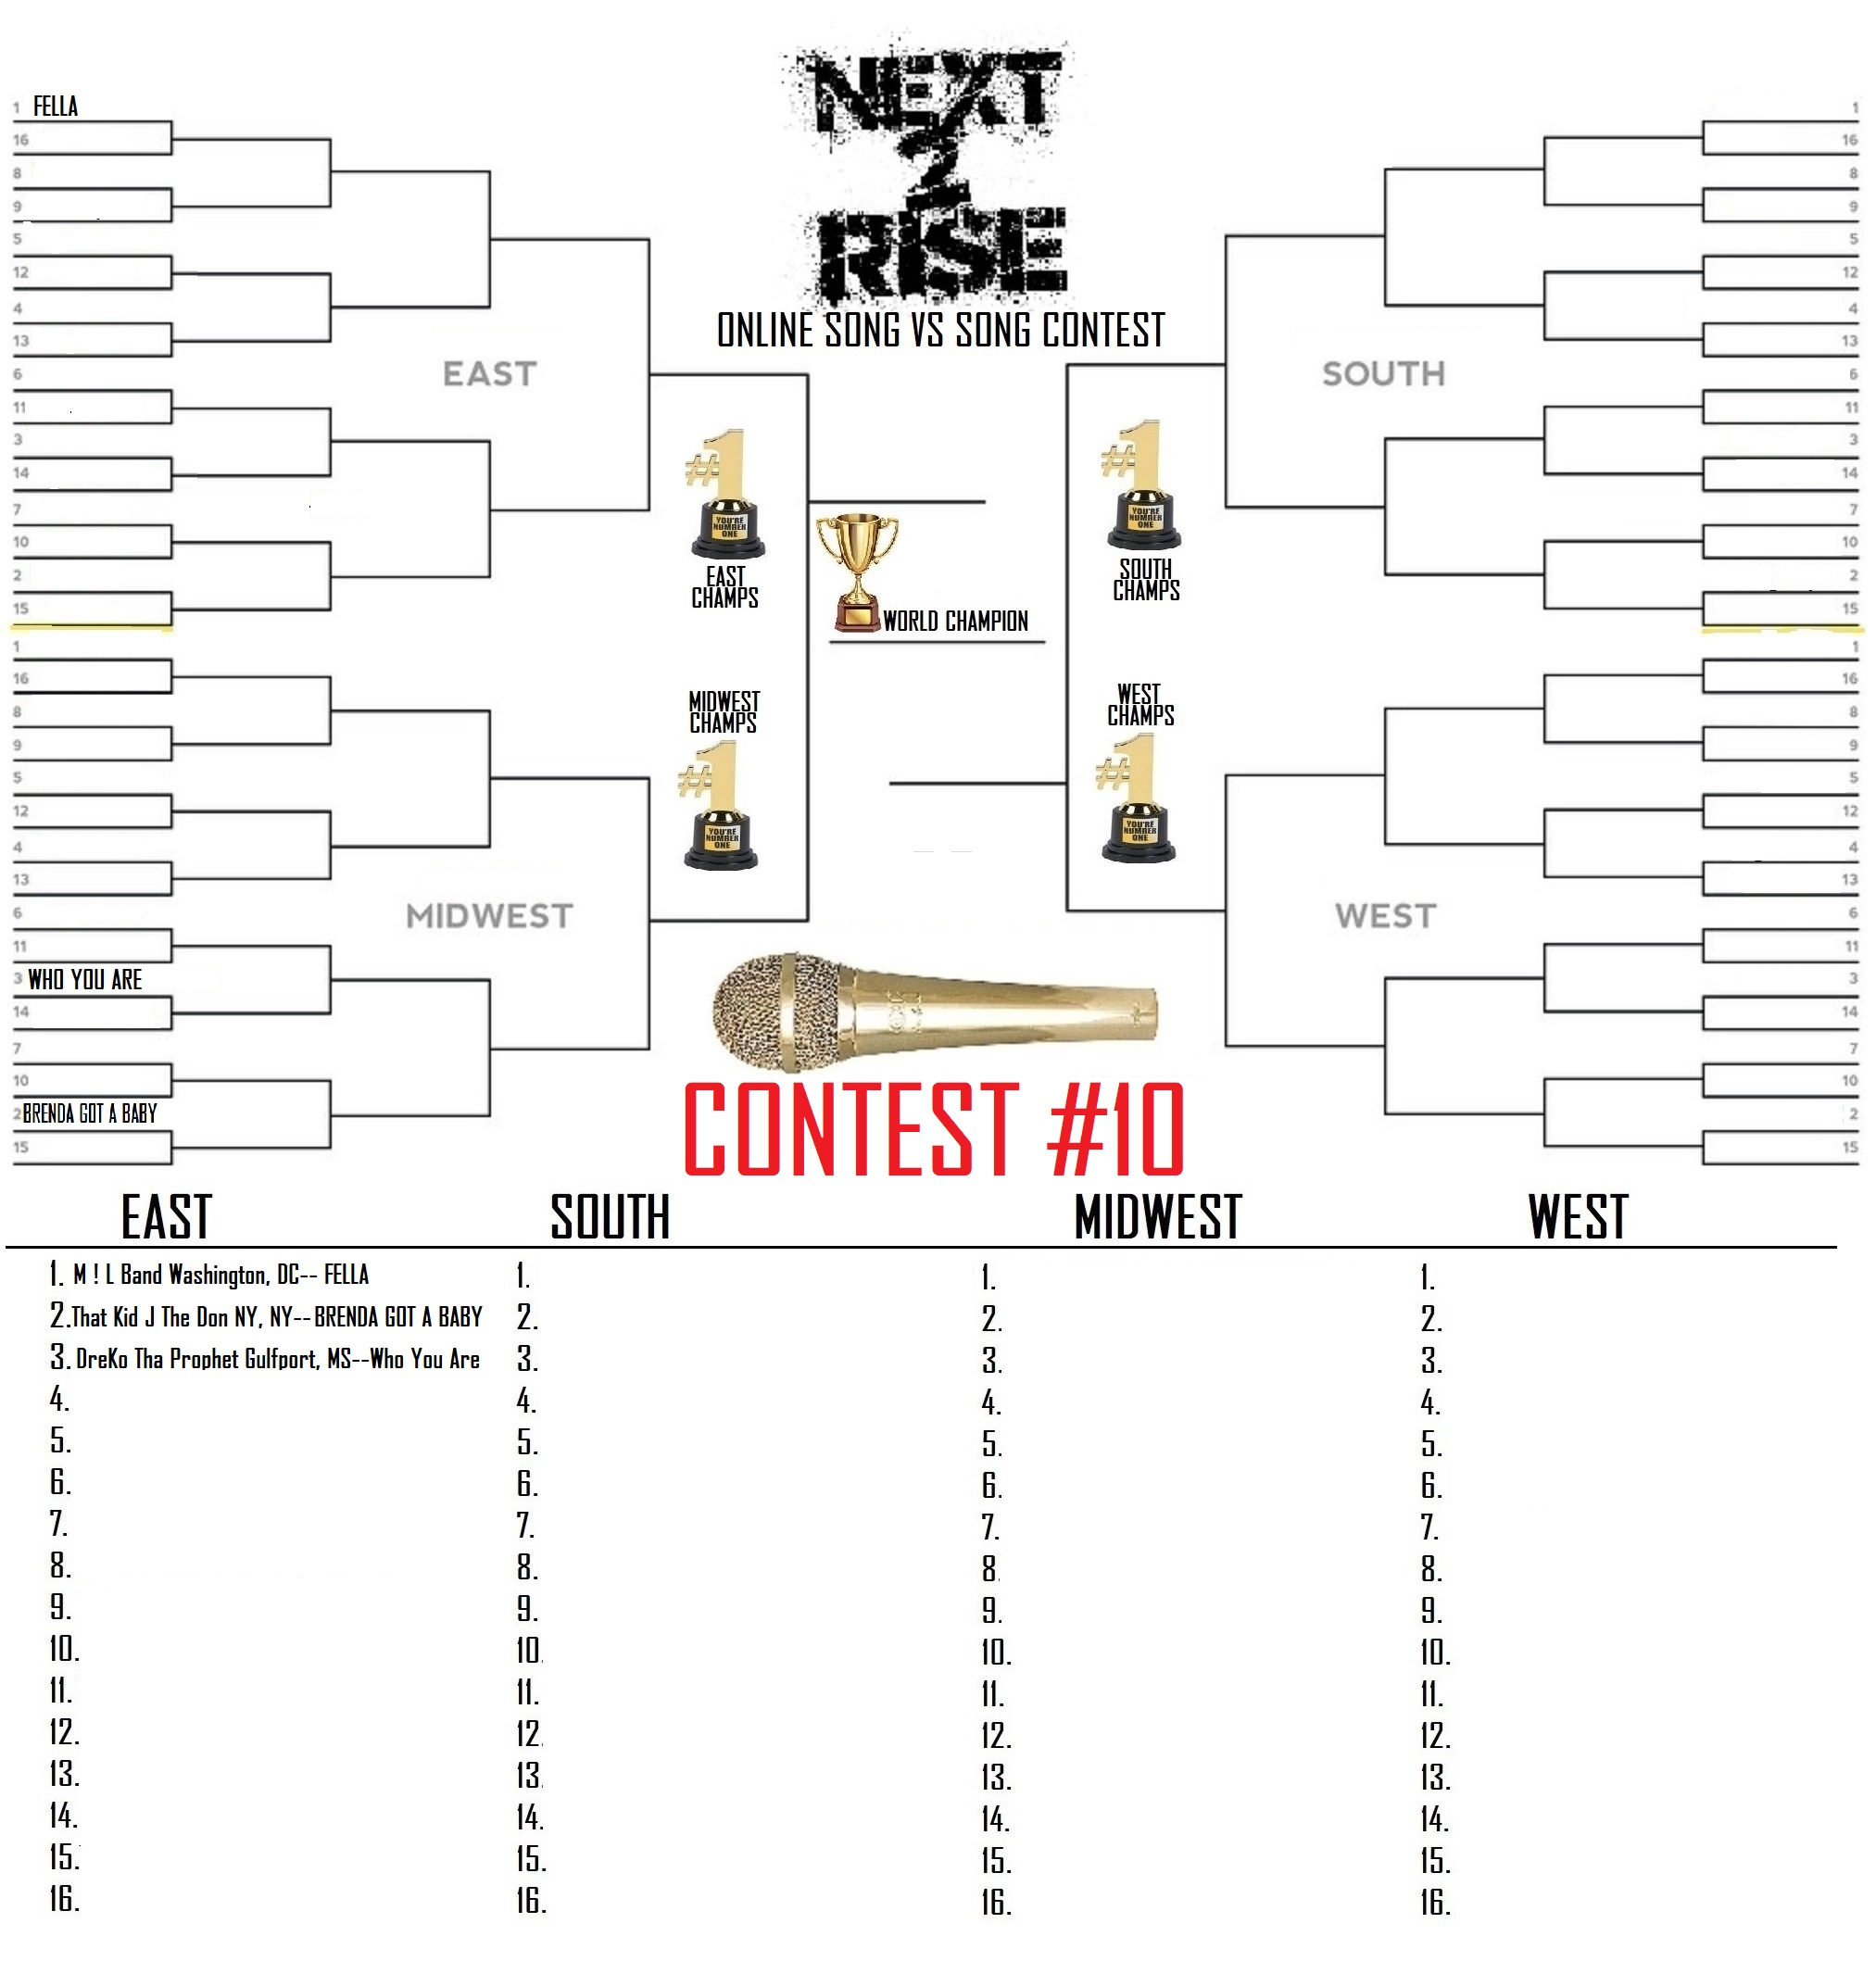 27TH CONTEST #10 EAST BRACKET